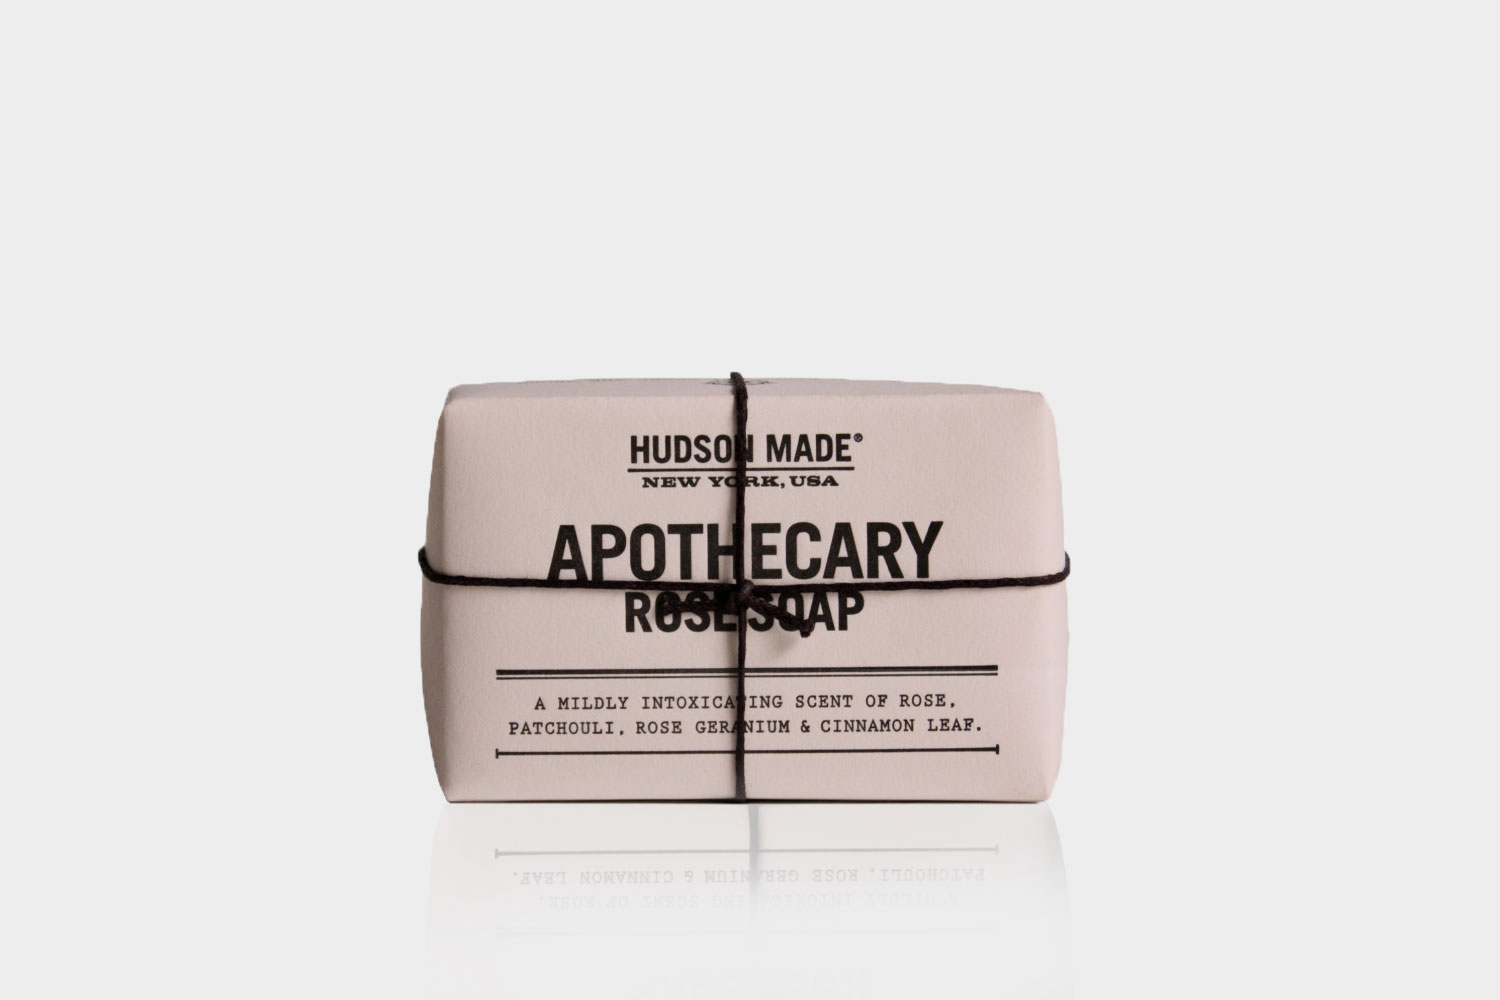 Hudson Made New York Apothecary Rose Soap